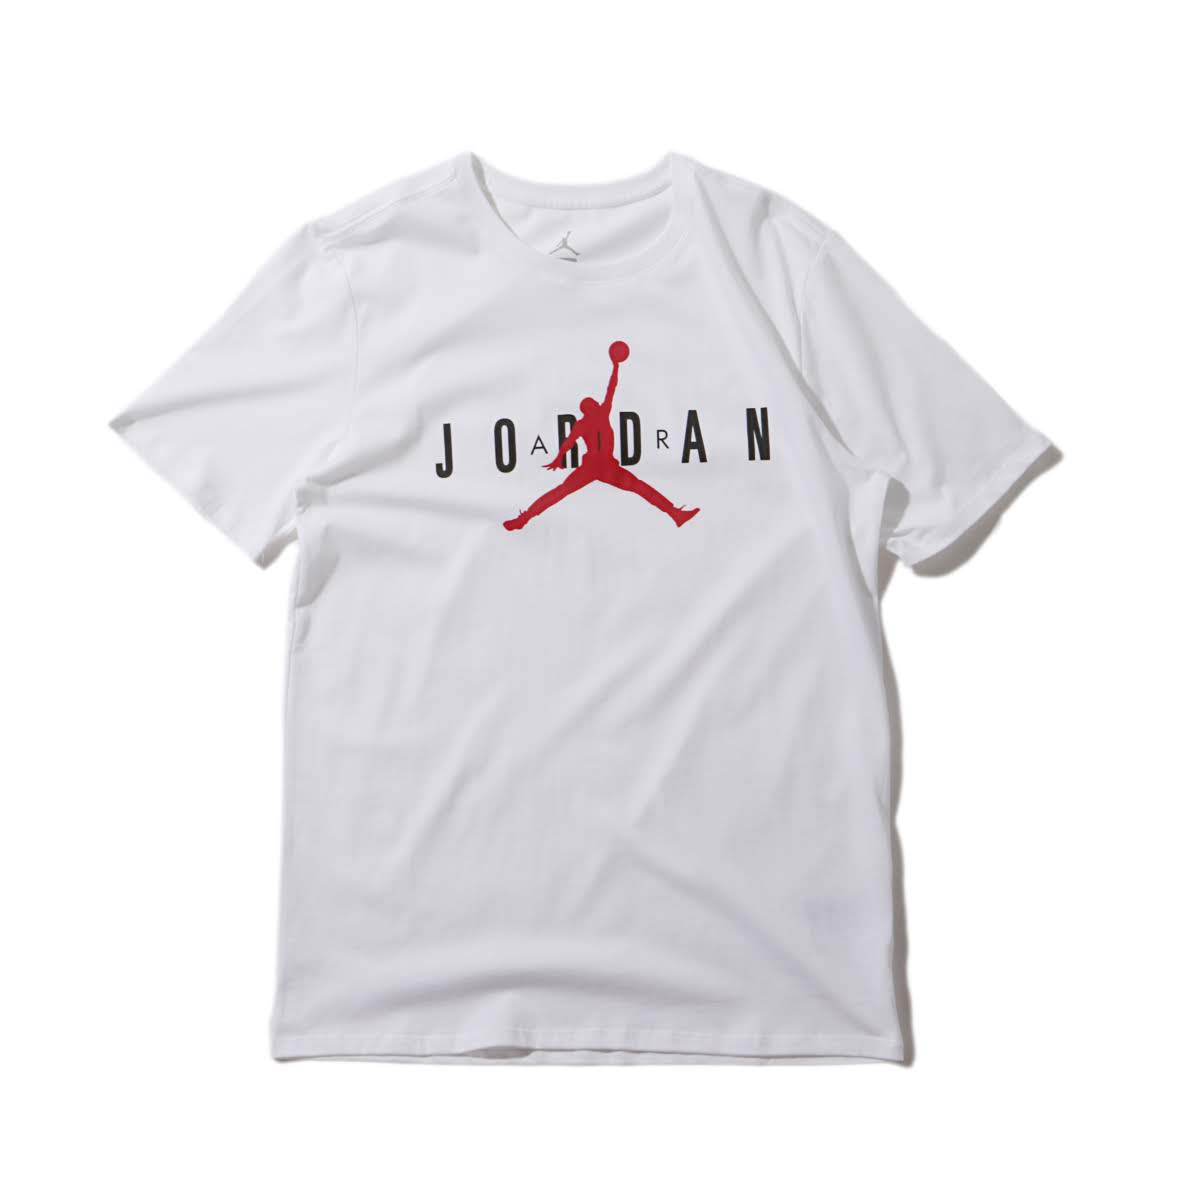 c07ec0fbf38562 ... player who printed graphic of Michael Jordan who is Aiko Nic to the  cotton jersey material that the Jordan sportswear brand 5 men s T-shirt is  soft.